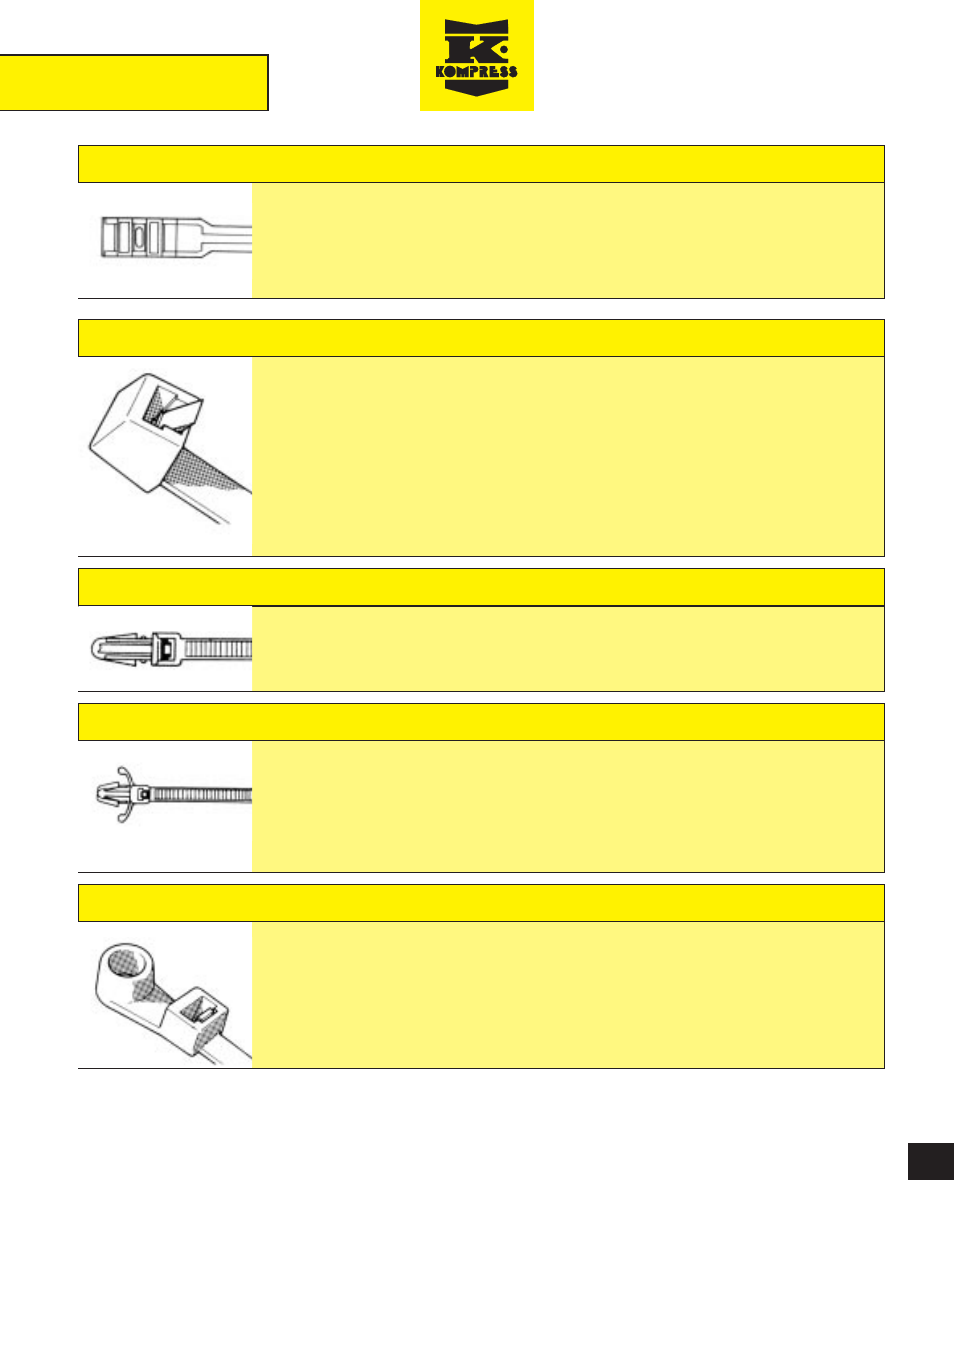 198a47e06a8b And fixings, Flat head nylon 11/12 ties, Releasable cable ties | Northern  Connectors Kompress Cable Ties & Fixings User Manual | Page 5 / 10